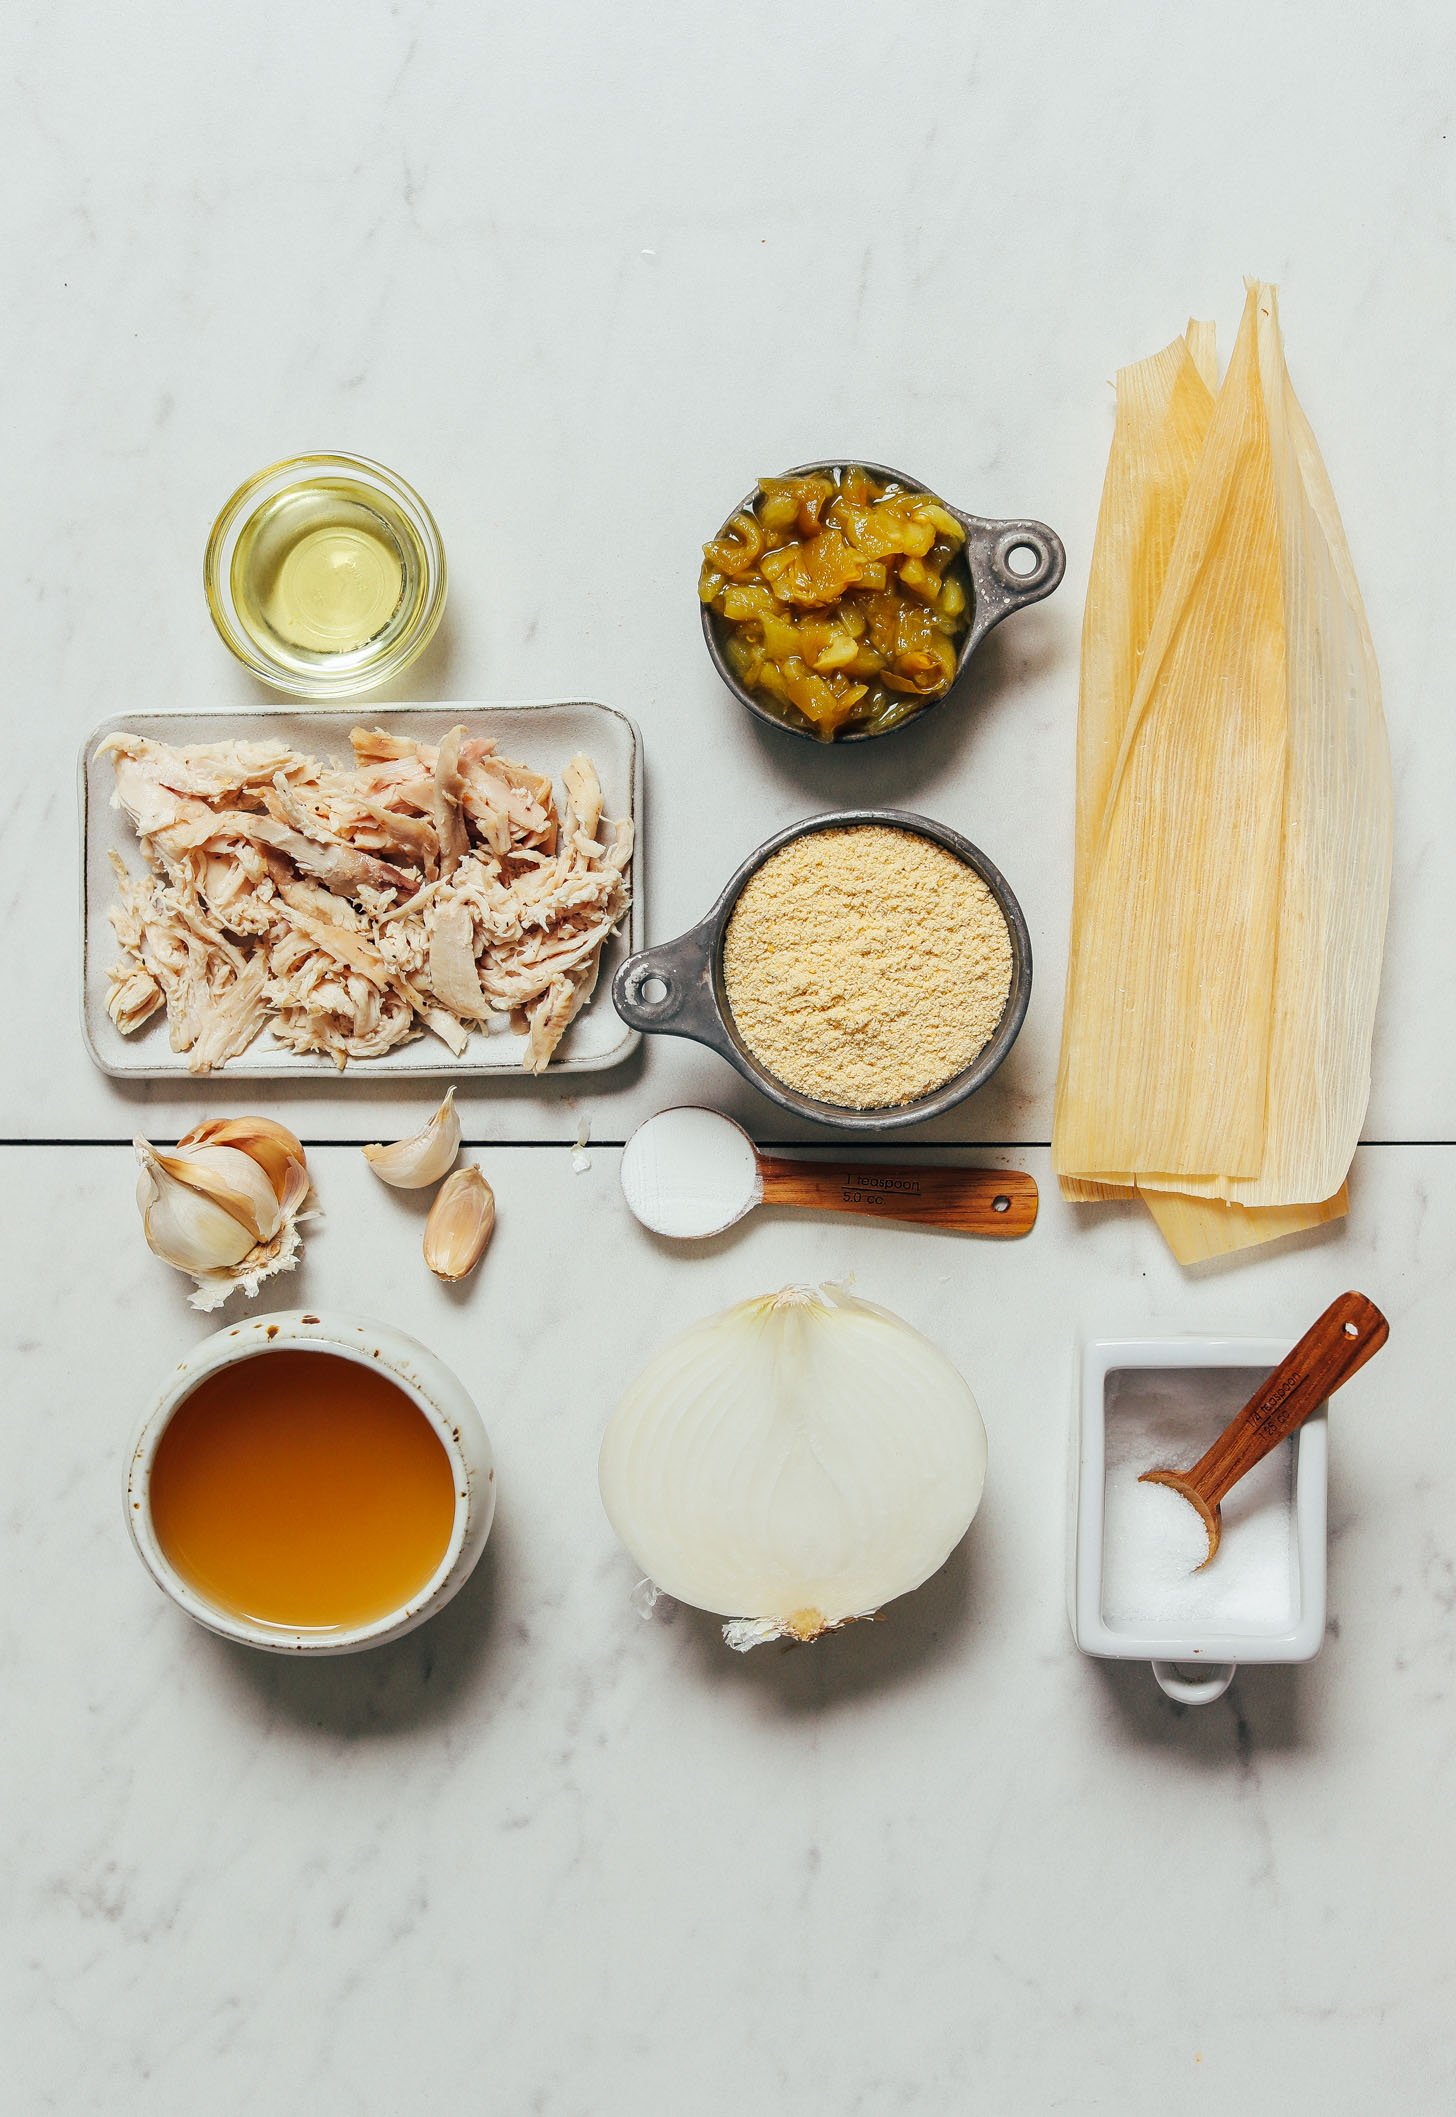 Shredded chicken, masa harina, and other ingredients for making our homemade Chicken Tamales recipe